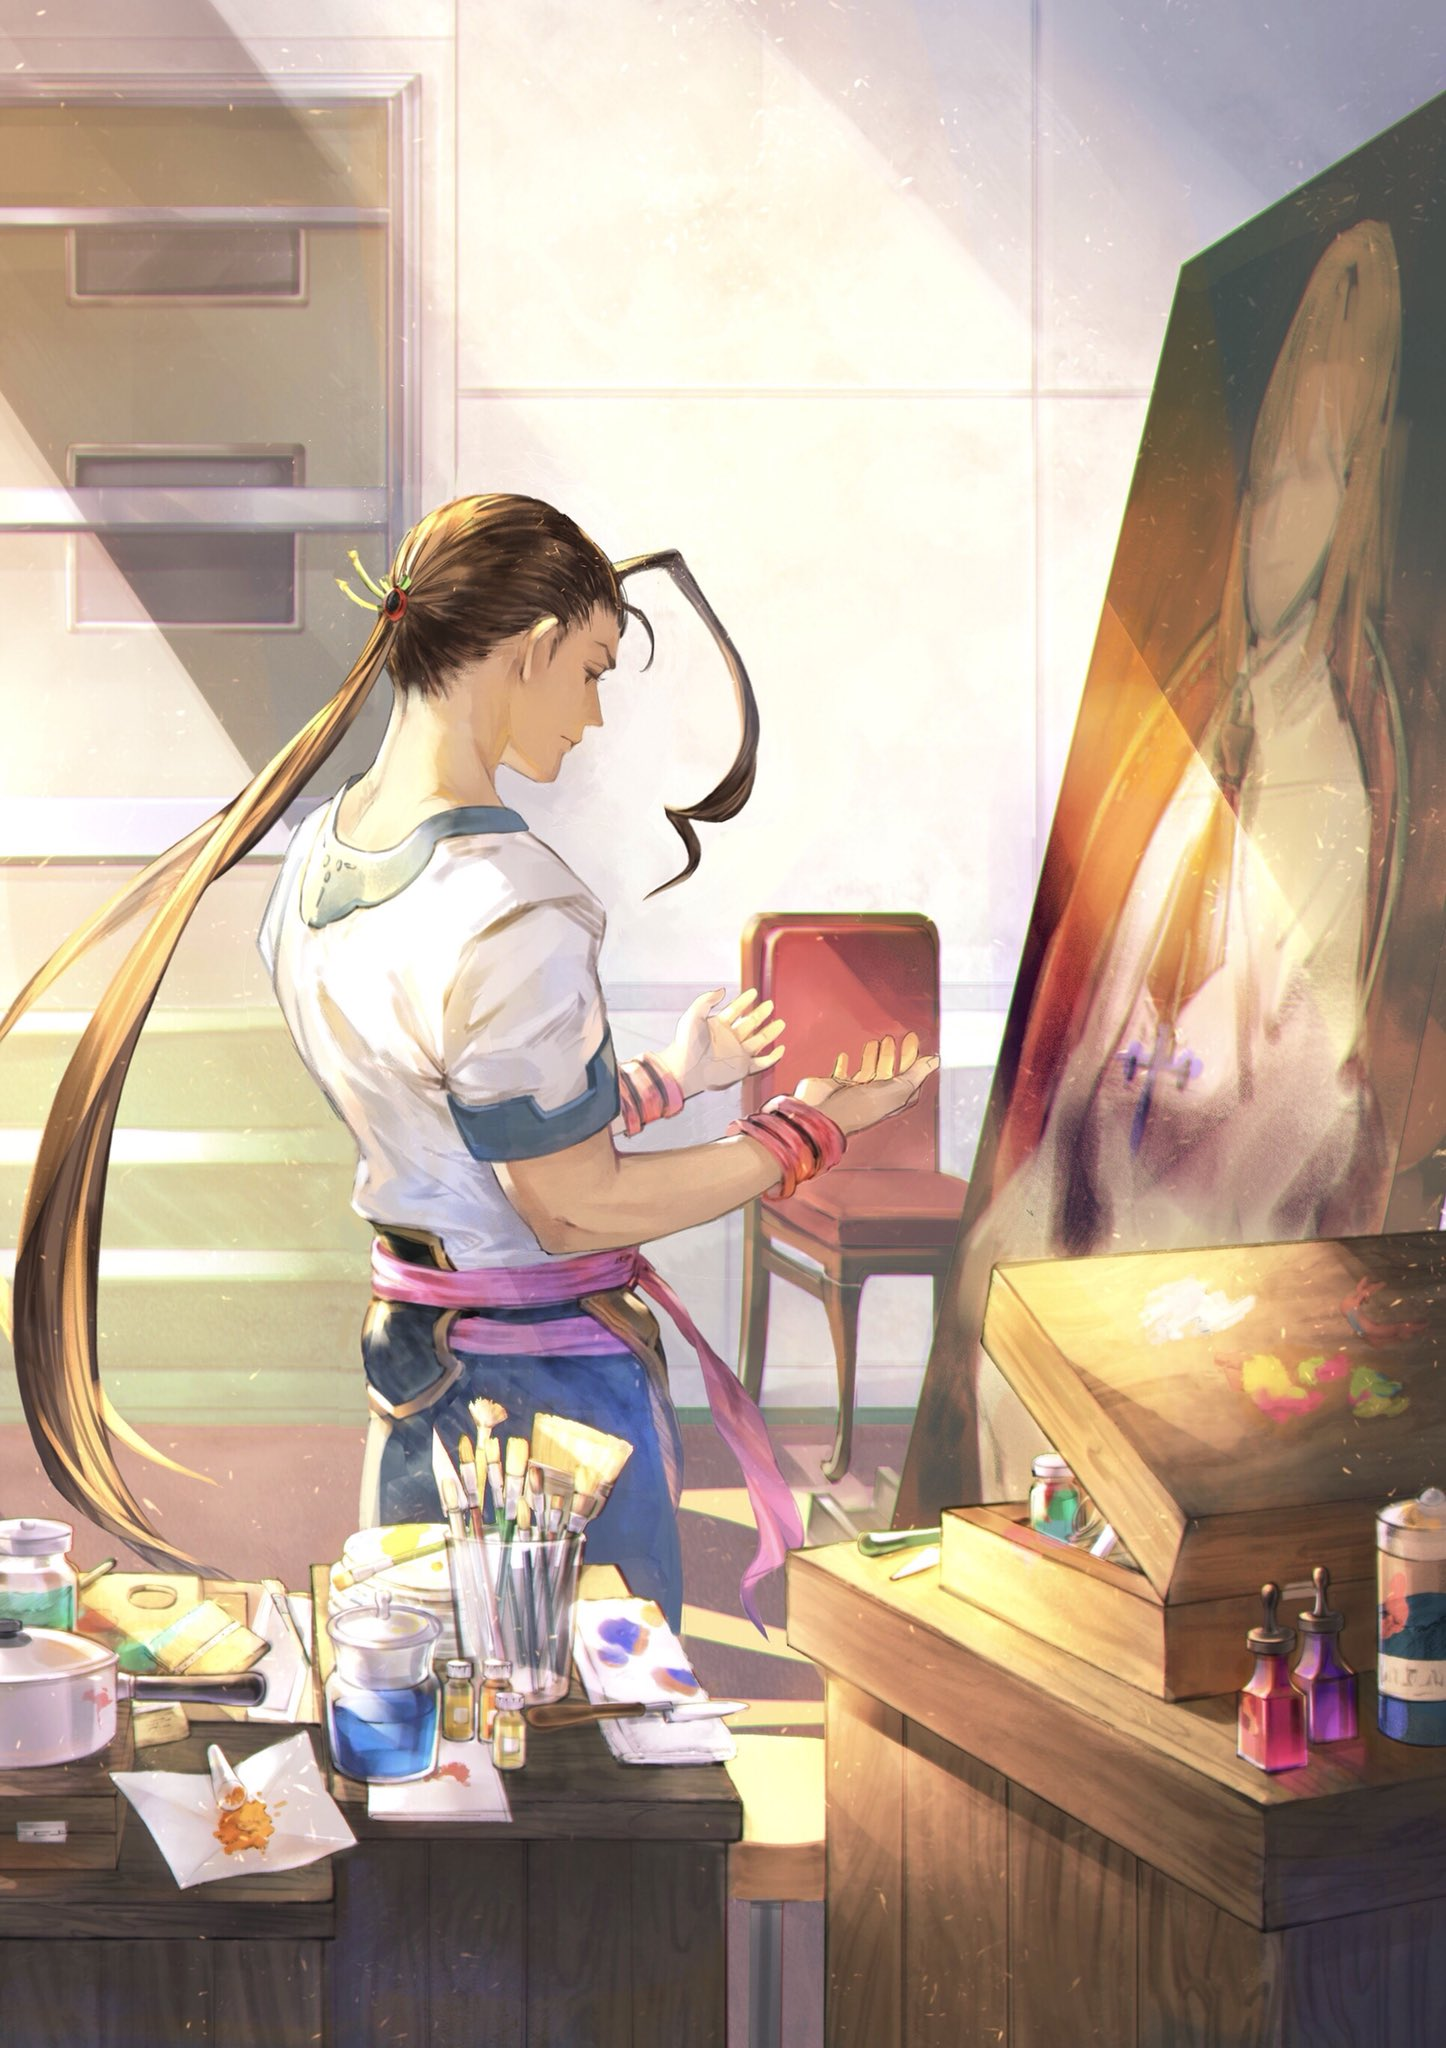 1boy bomssp bottle canvas_(object) elhaym_van_houten fei_fong_wong highres jar long_hair looking_at_hands male_focus paintbrush painting_(object) palette single_hair_intake solo_focus wristband xenogears